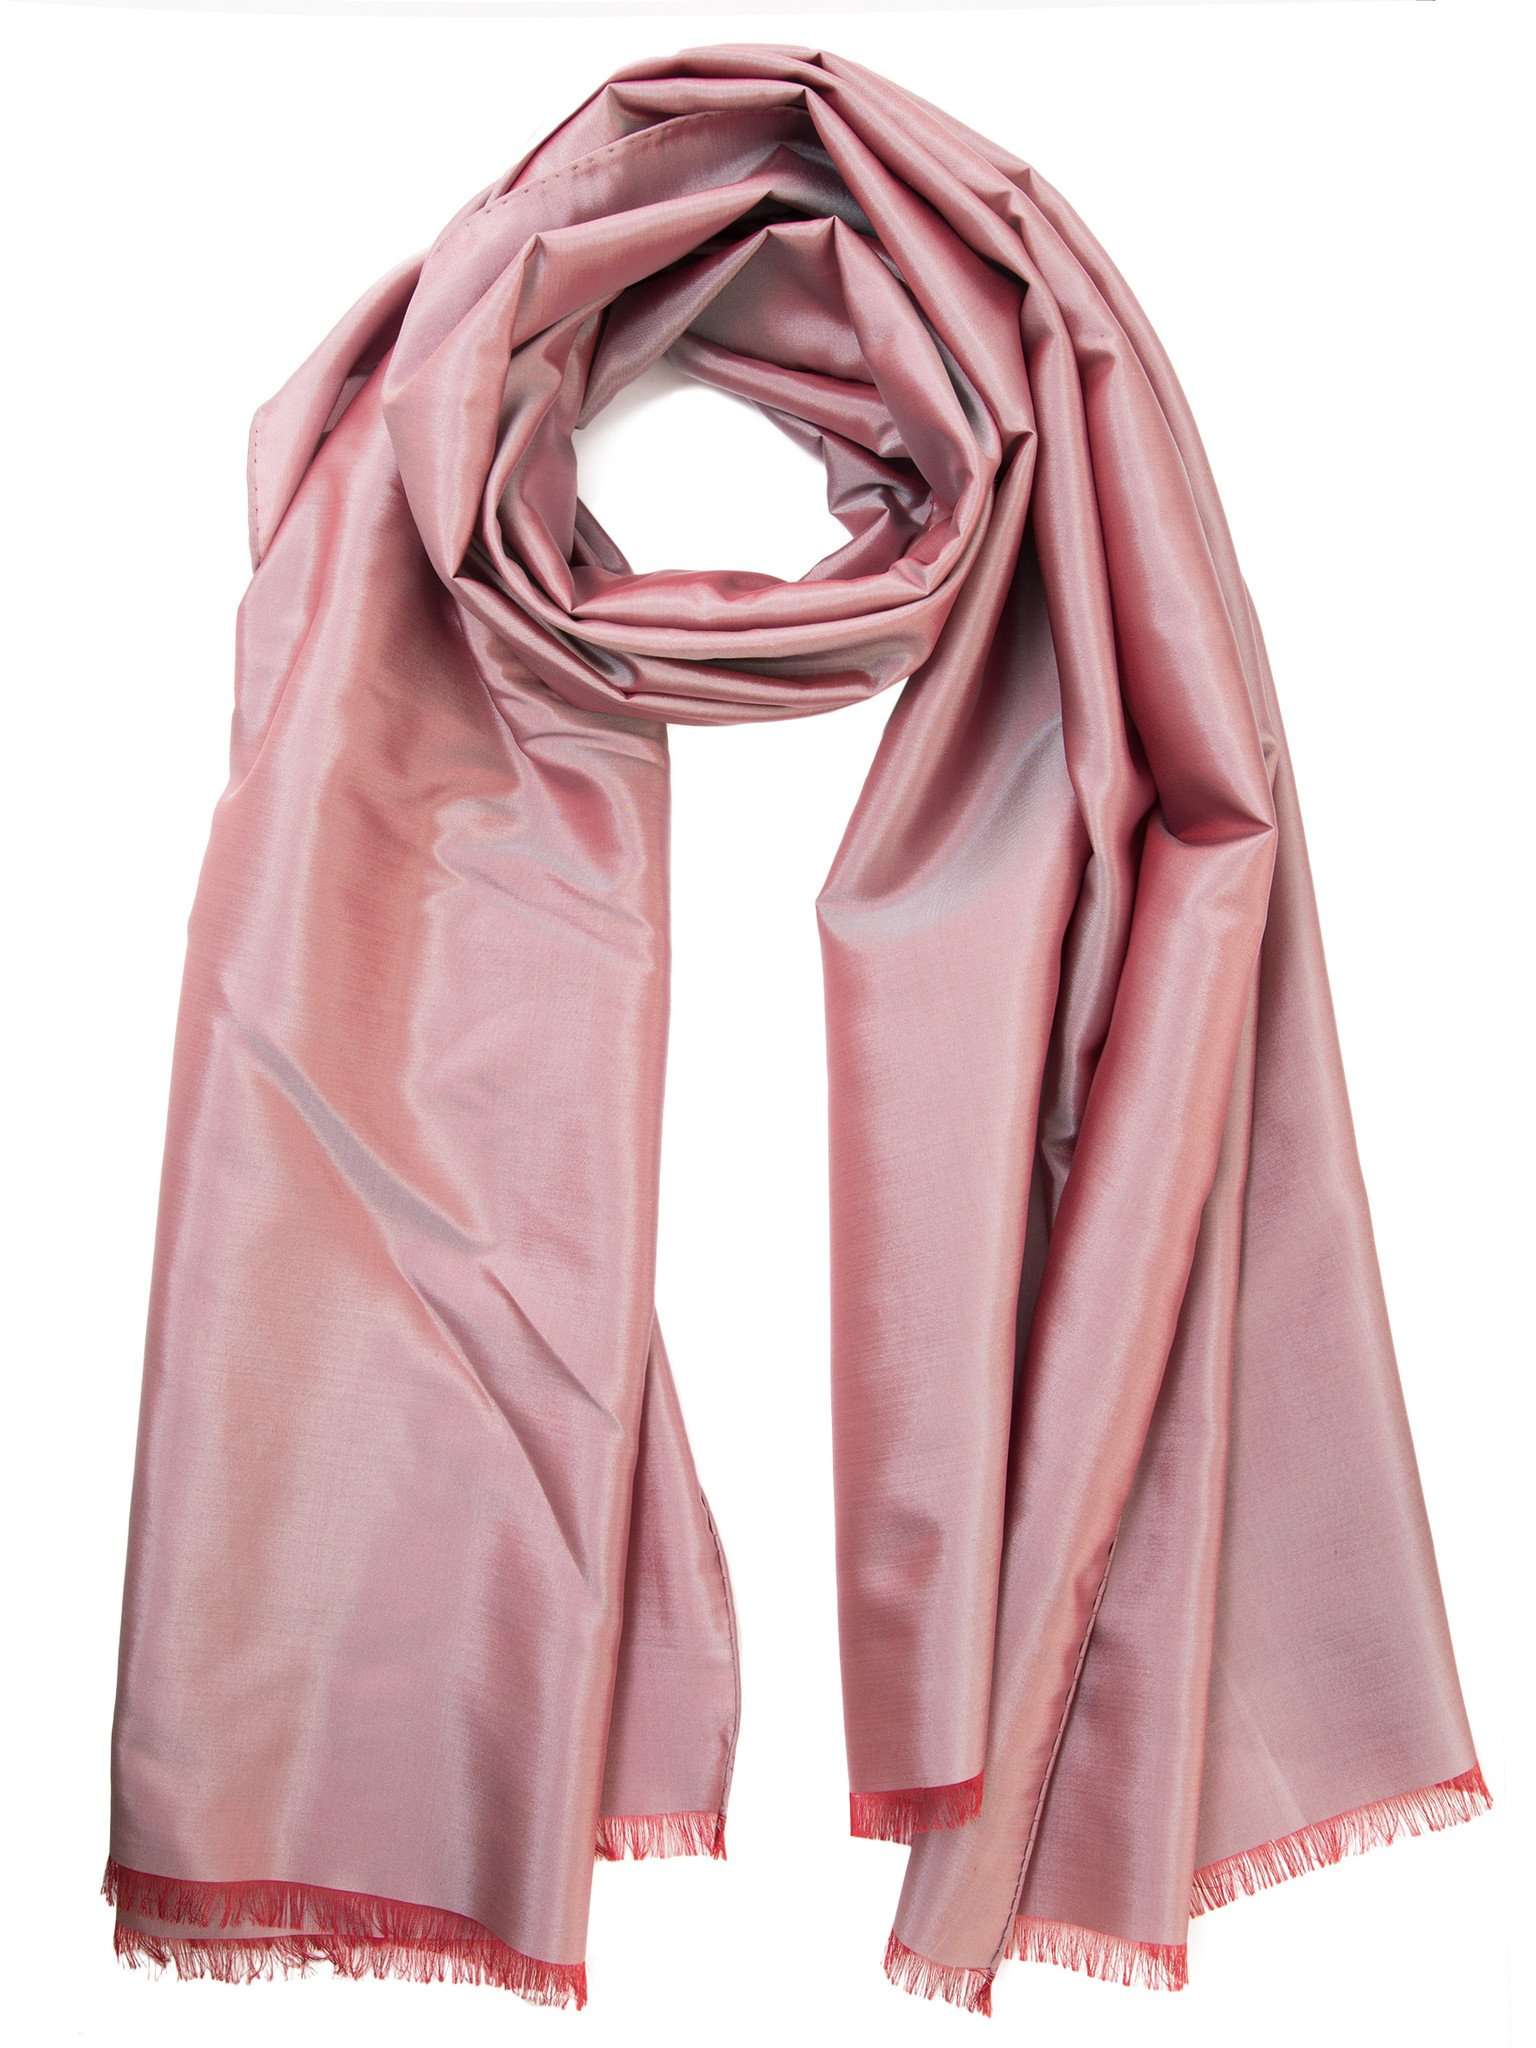 Elizabetta Italian Silk Shantung Evening Formal Scarf Shawl Wrap-Rose Pink